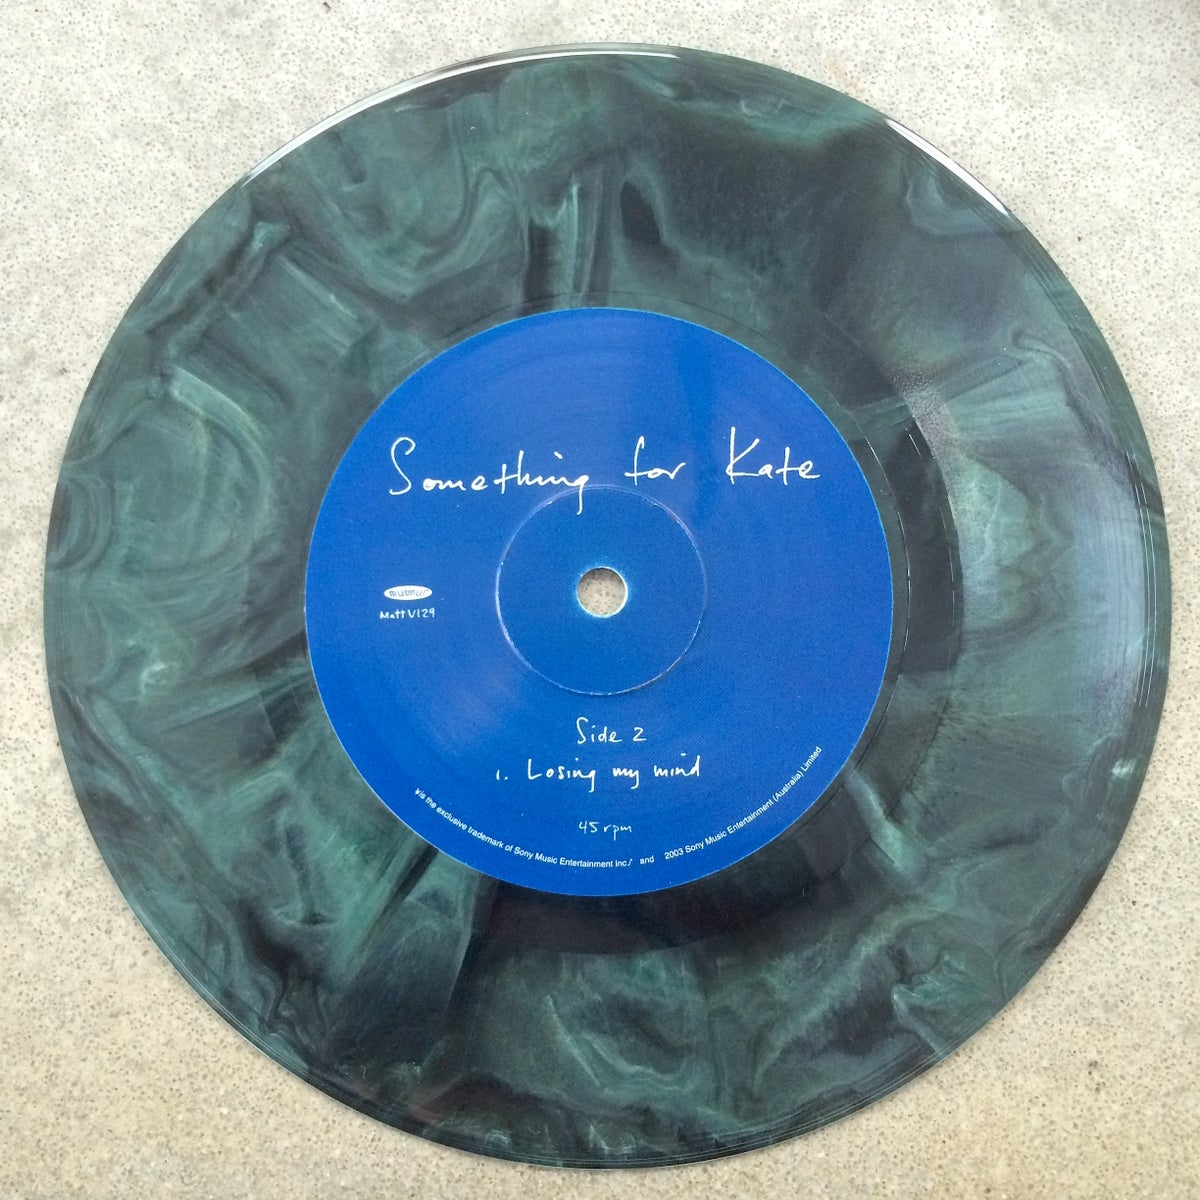 Something for Kate - 'Deja vu' MARBLEIZED colored 7 inch vinyl single -  Extremely rare